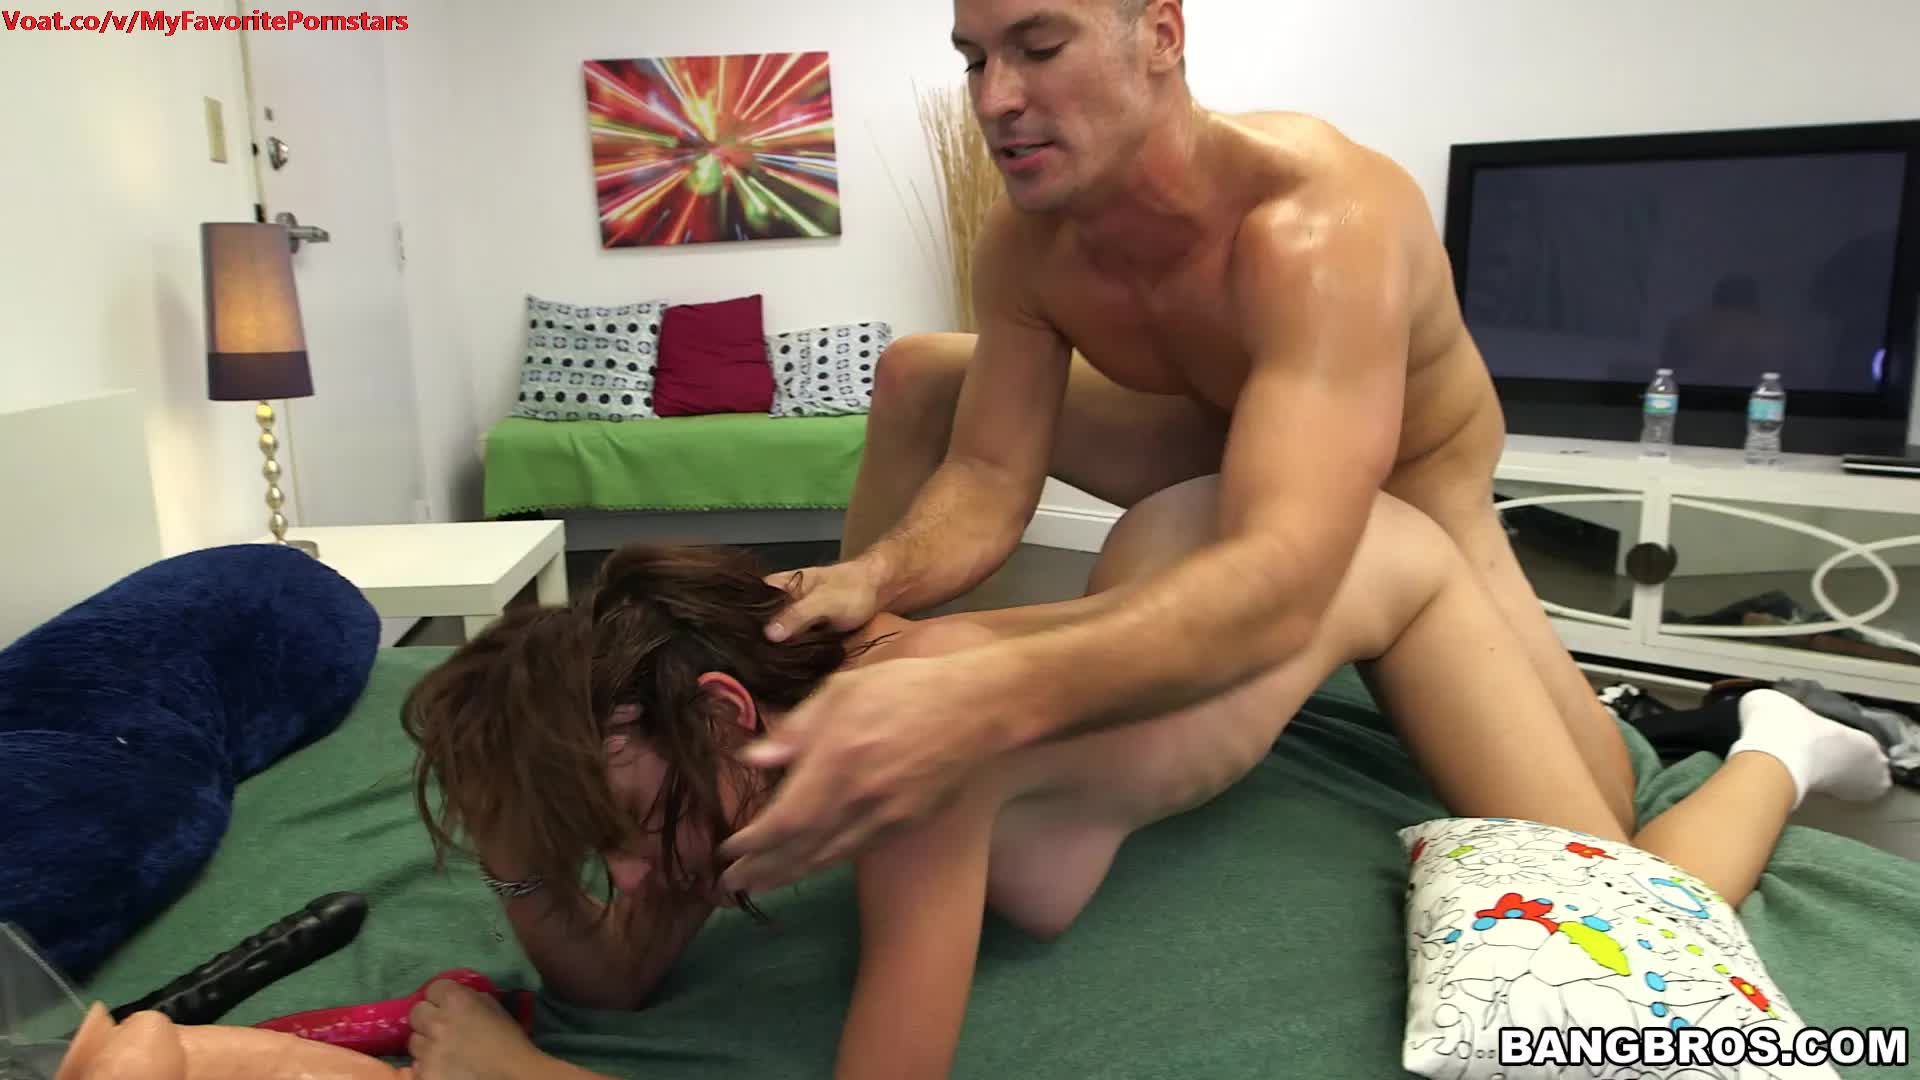 Cece Capella - Pile driving that tight pussy